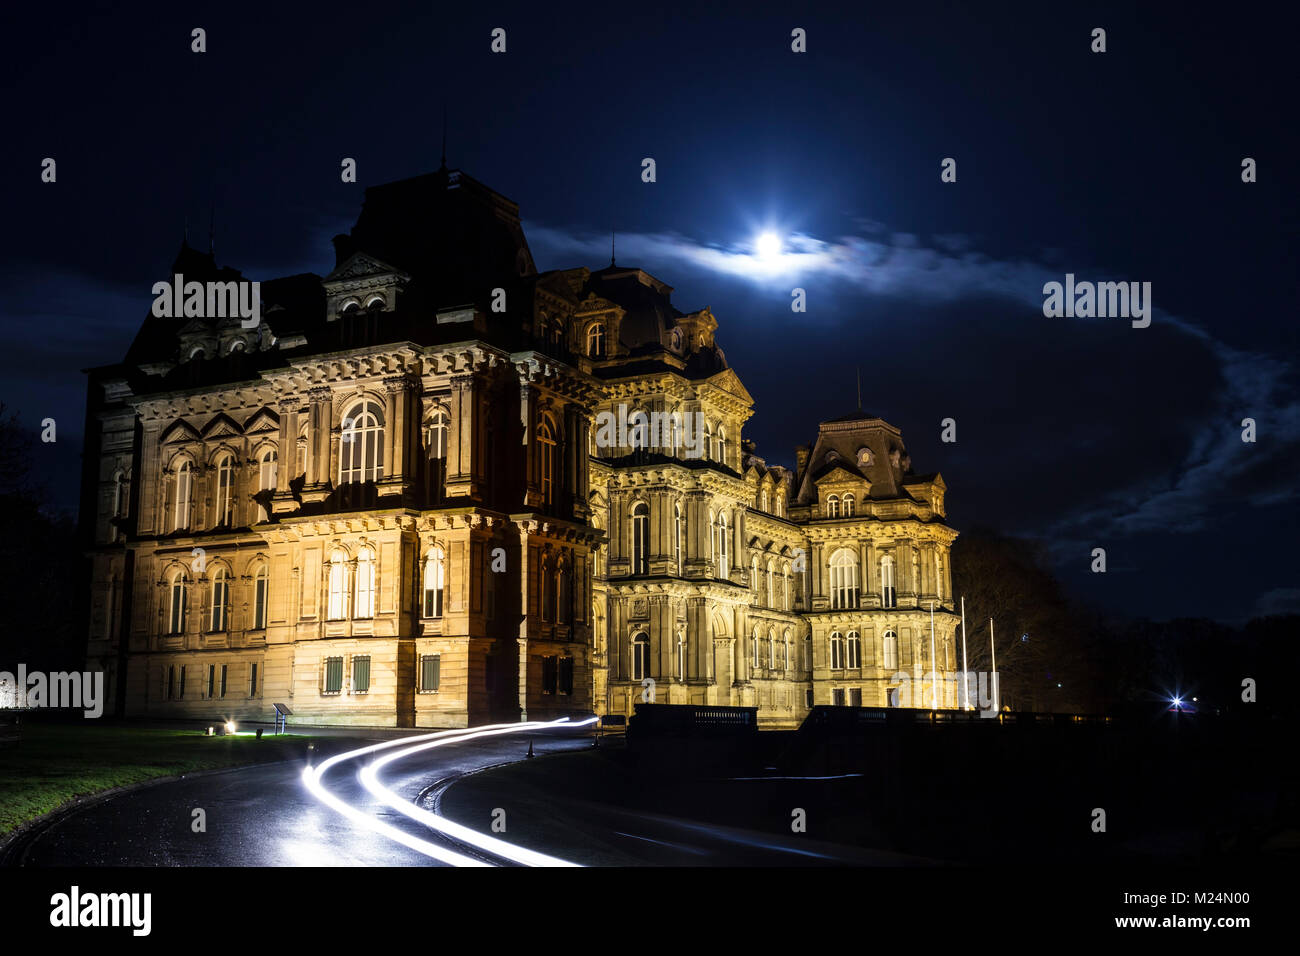 The Bowes Museum in Barnard Castle Under a Moonlit Sky, Teesdale, County Durham, UK. - Stock Image